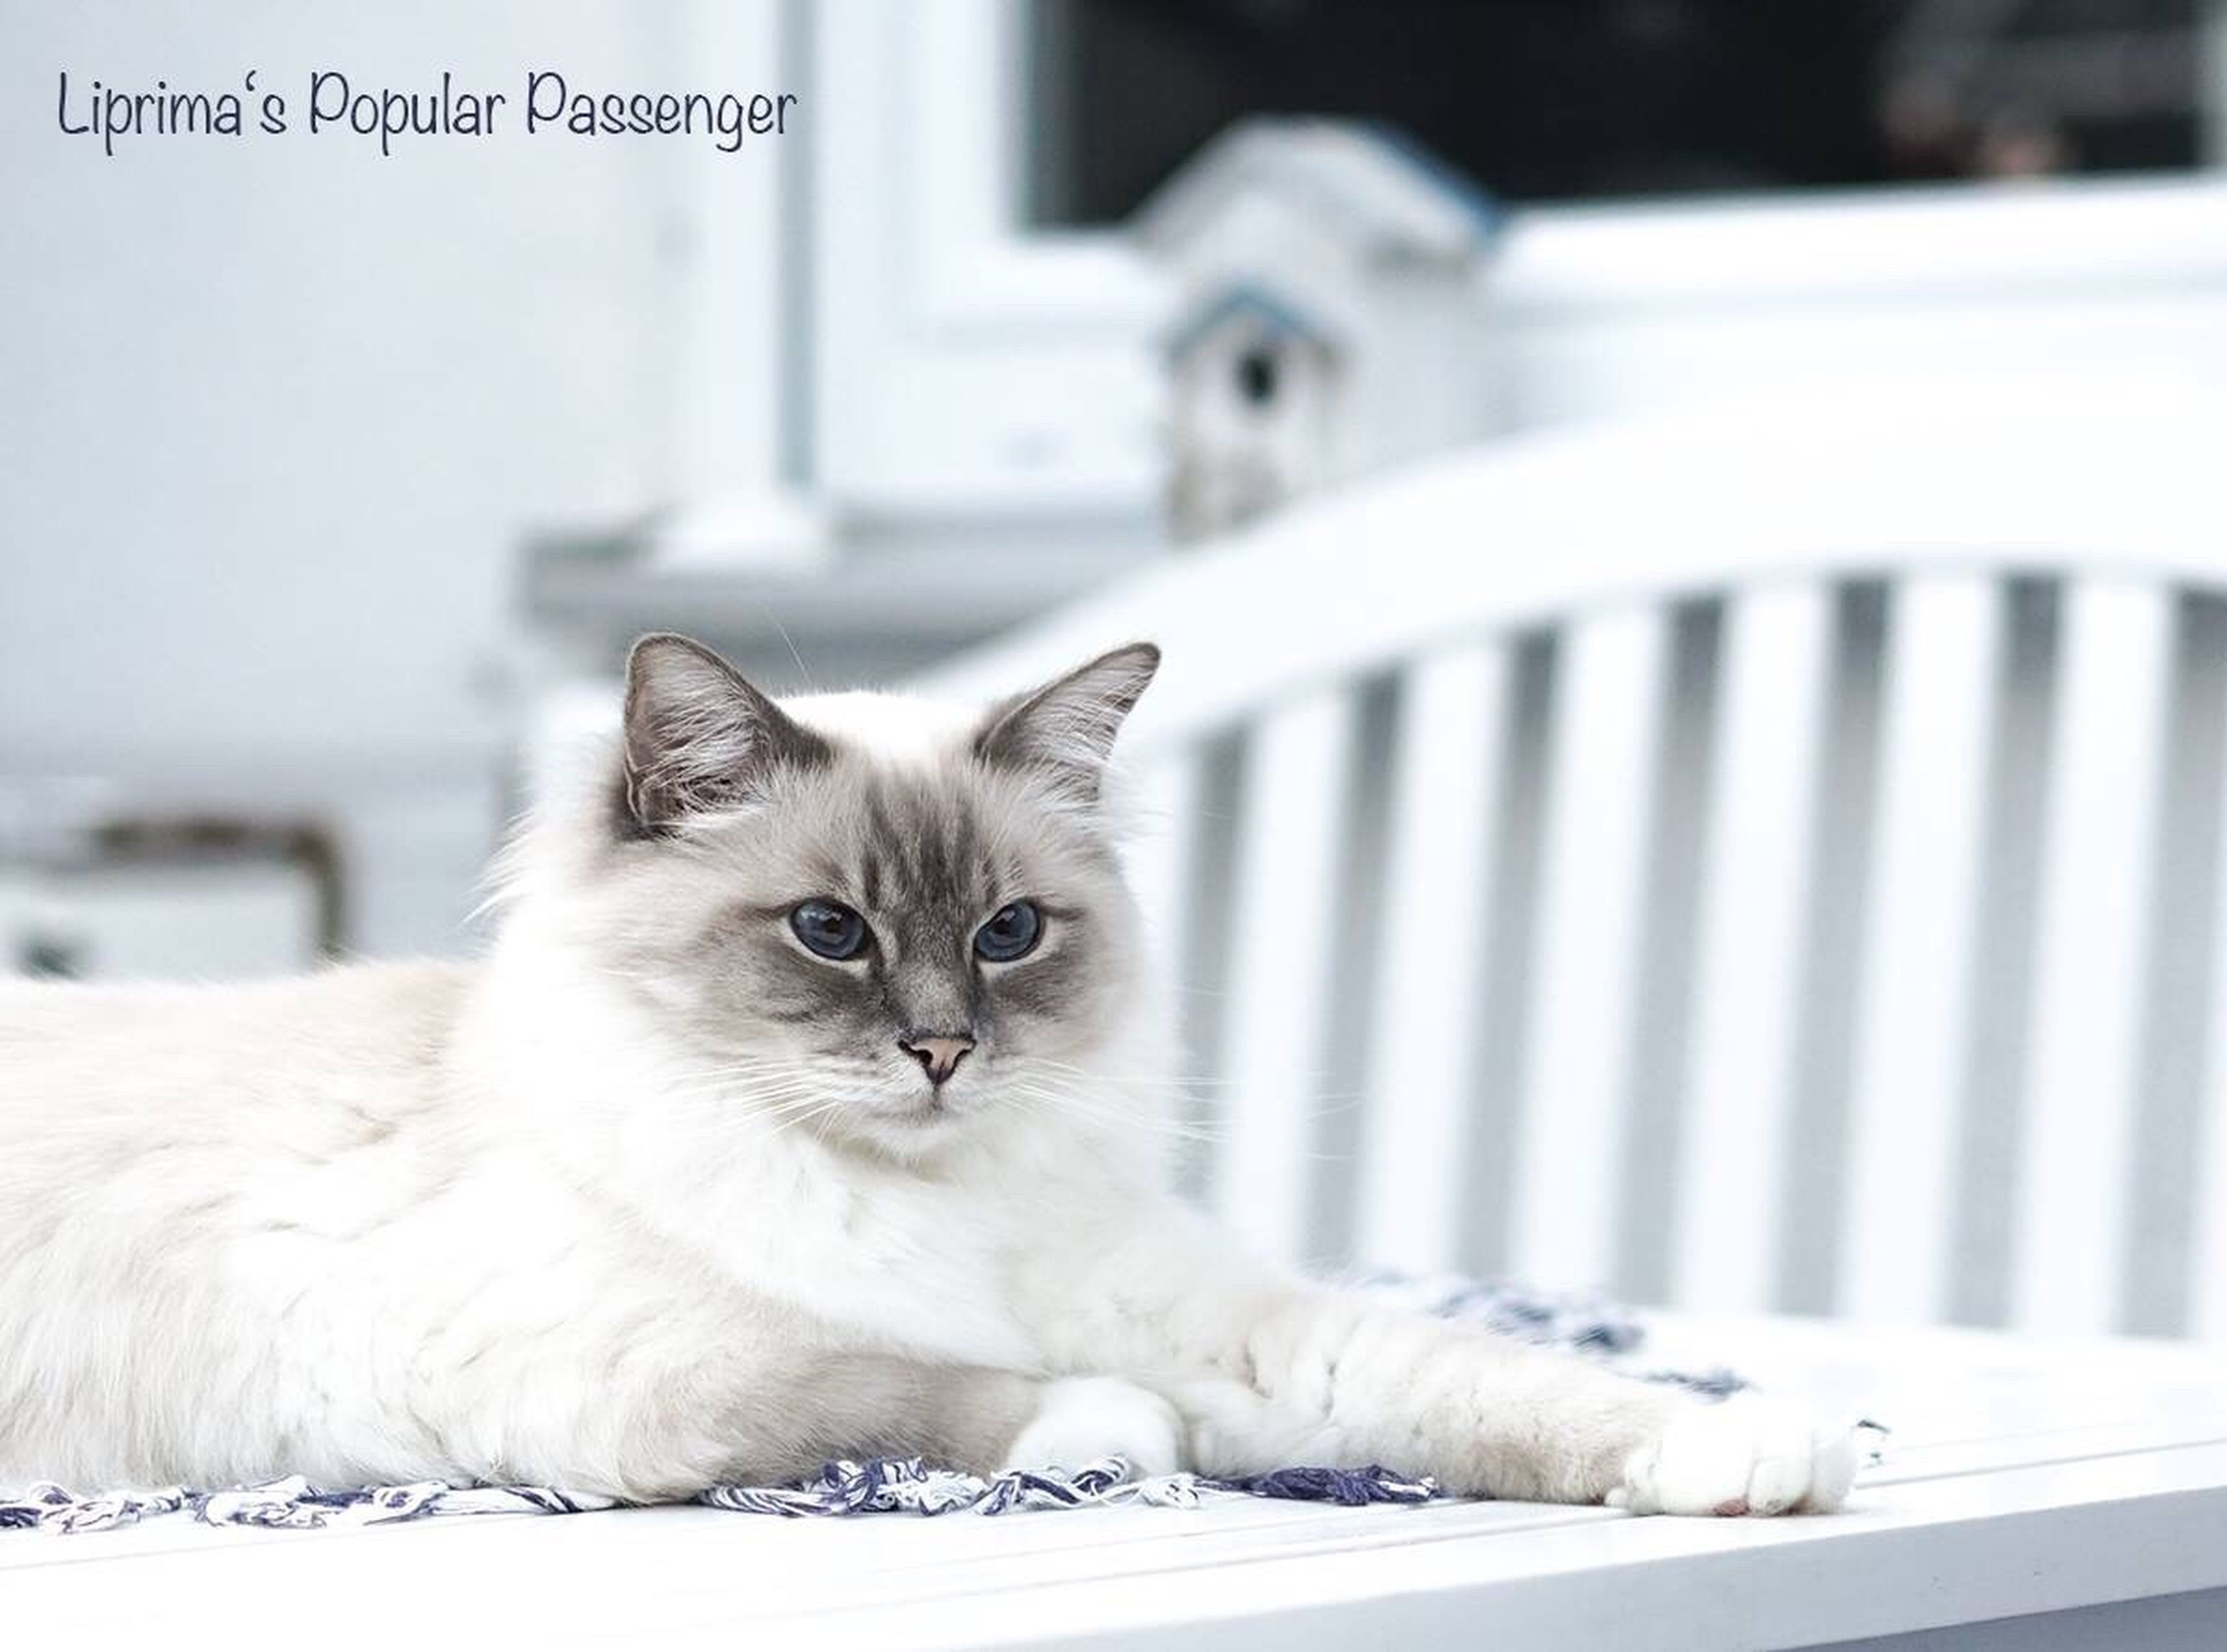 pets, domestic animals, animal themes, domestic cat, close-up, one animal, white color, focus on foreground, animal head, mammal, cat, alertness, front view, feline, looking at camera, whisker, zoology, animal eye, no people, animal hair